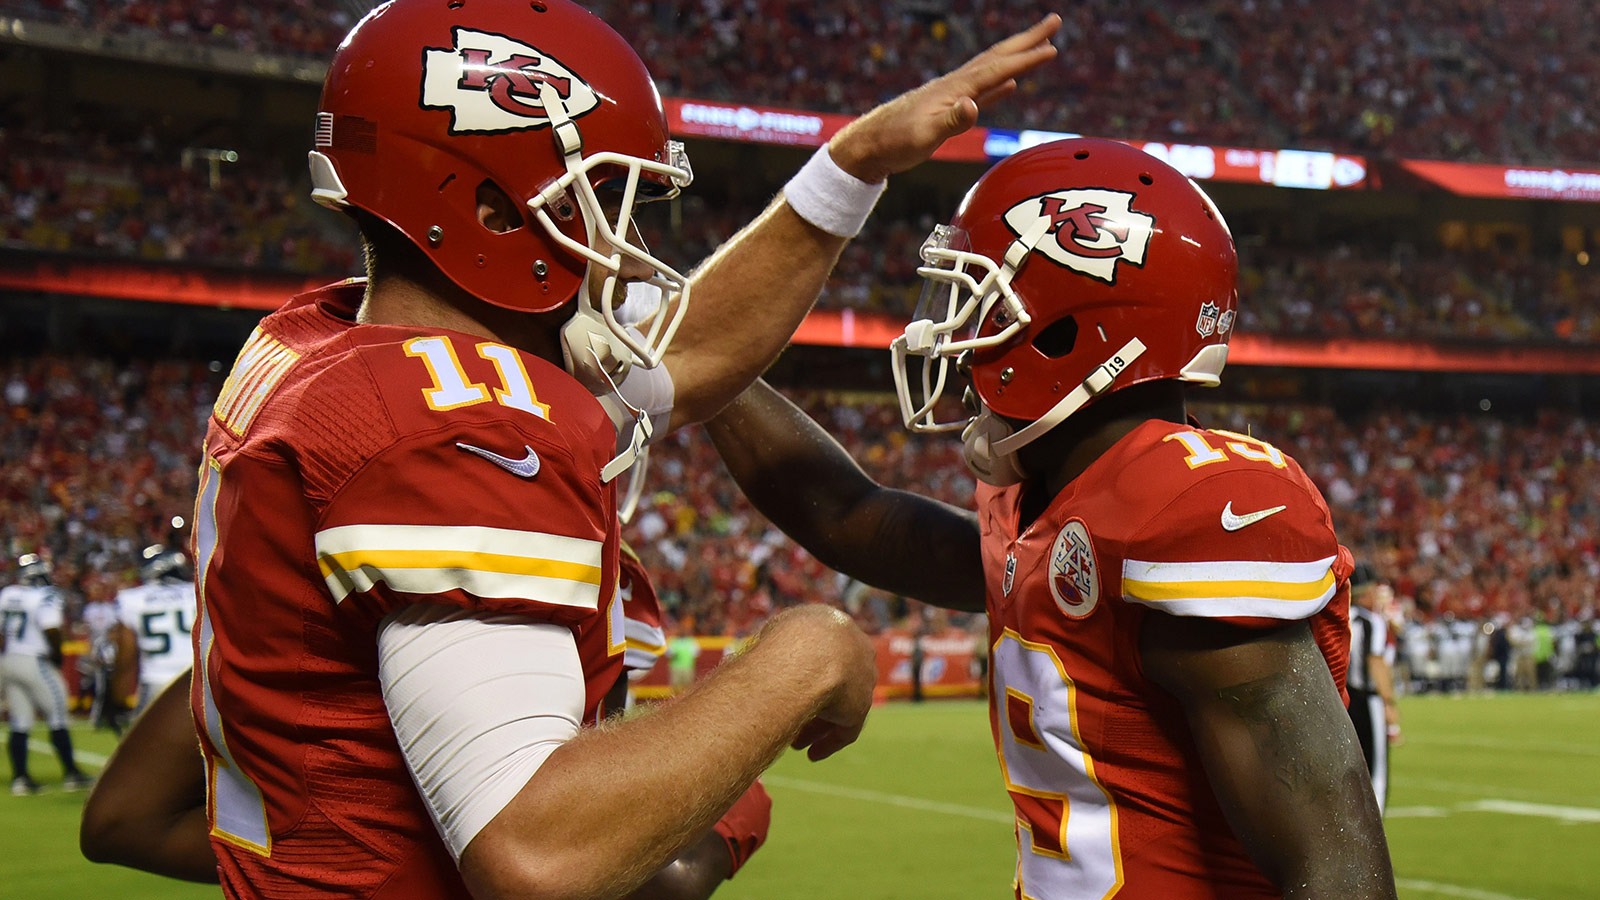 Chiefs beat Seahawks 14-13 to improve to 2-0 in preseason